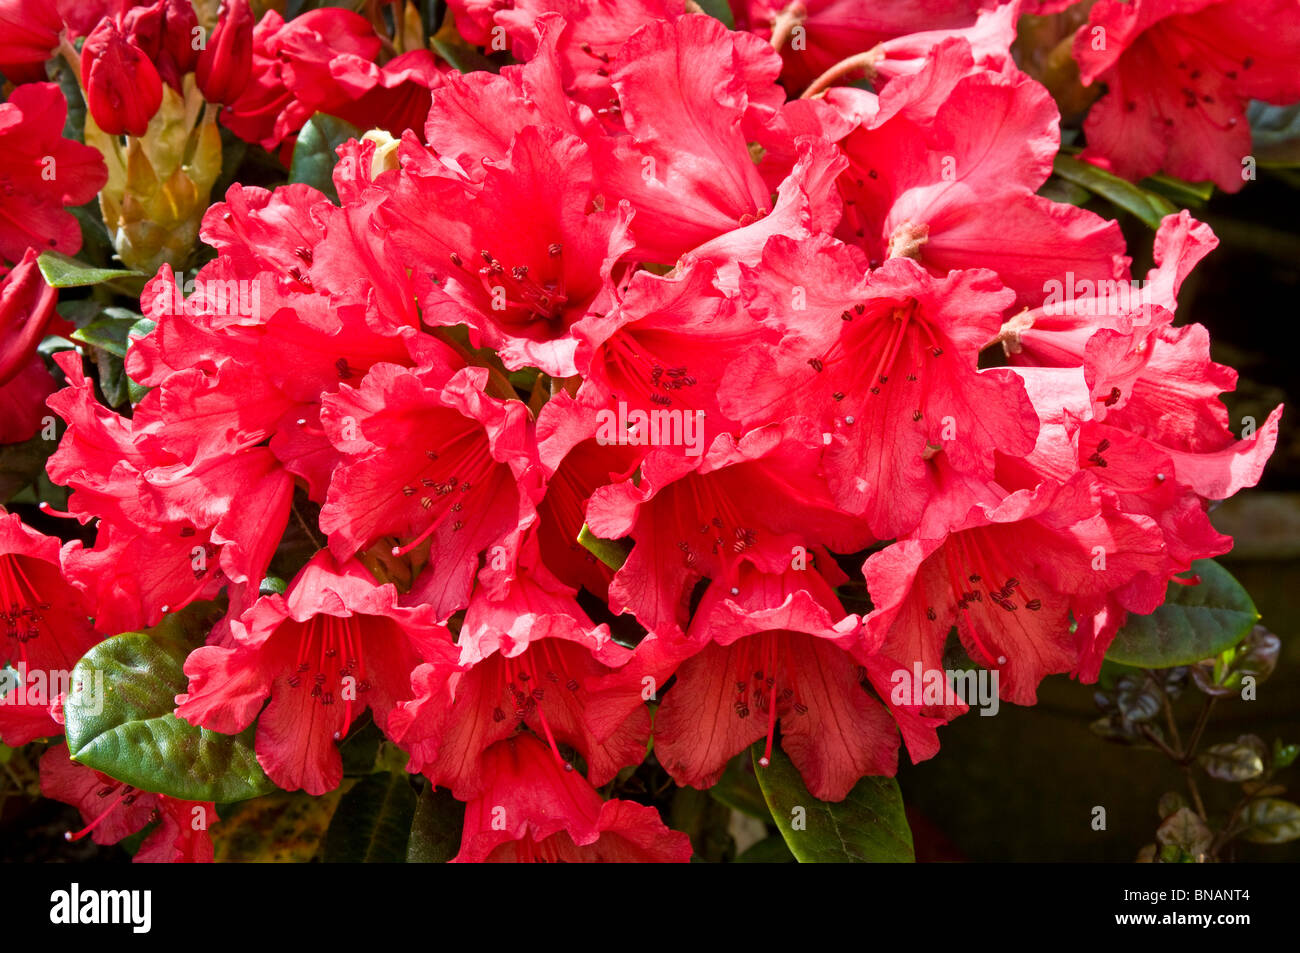 Cluster of bright red flowers on Rhododendron yakushimanum 'Titian Beauty' - Stock Image